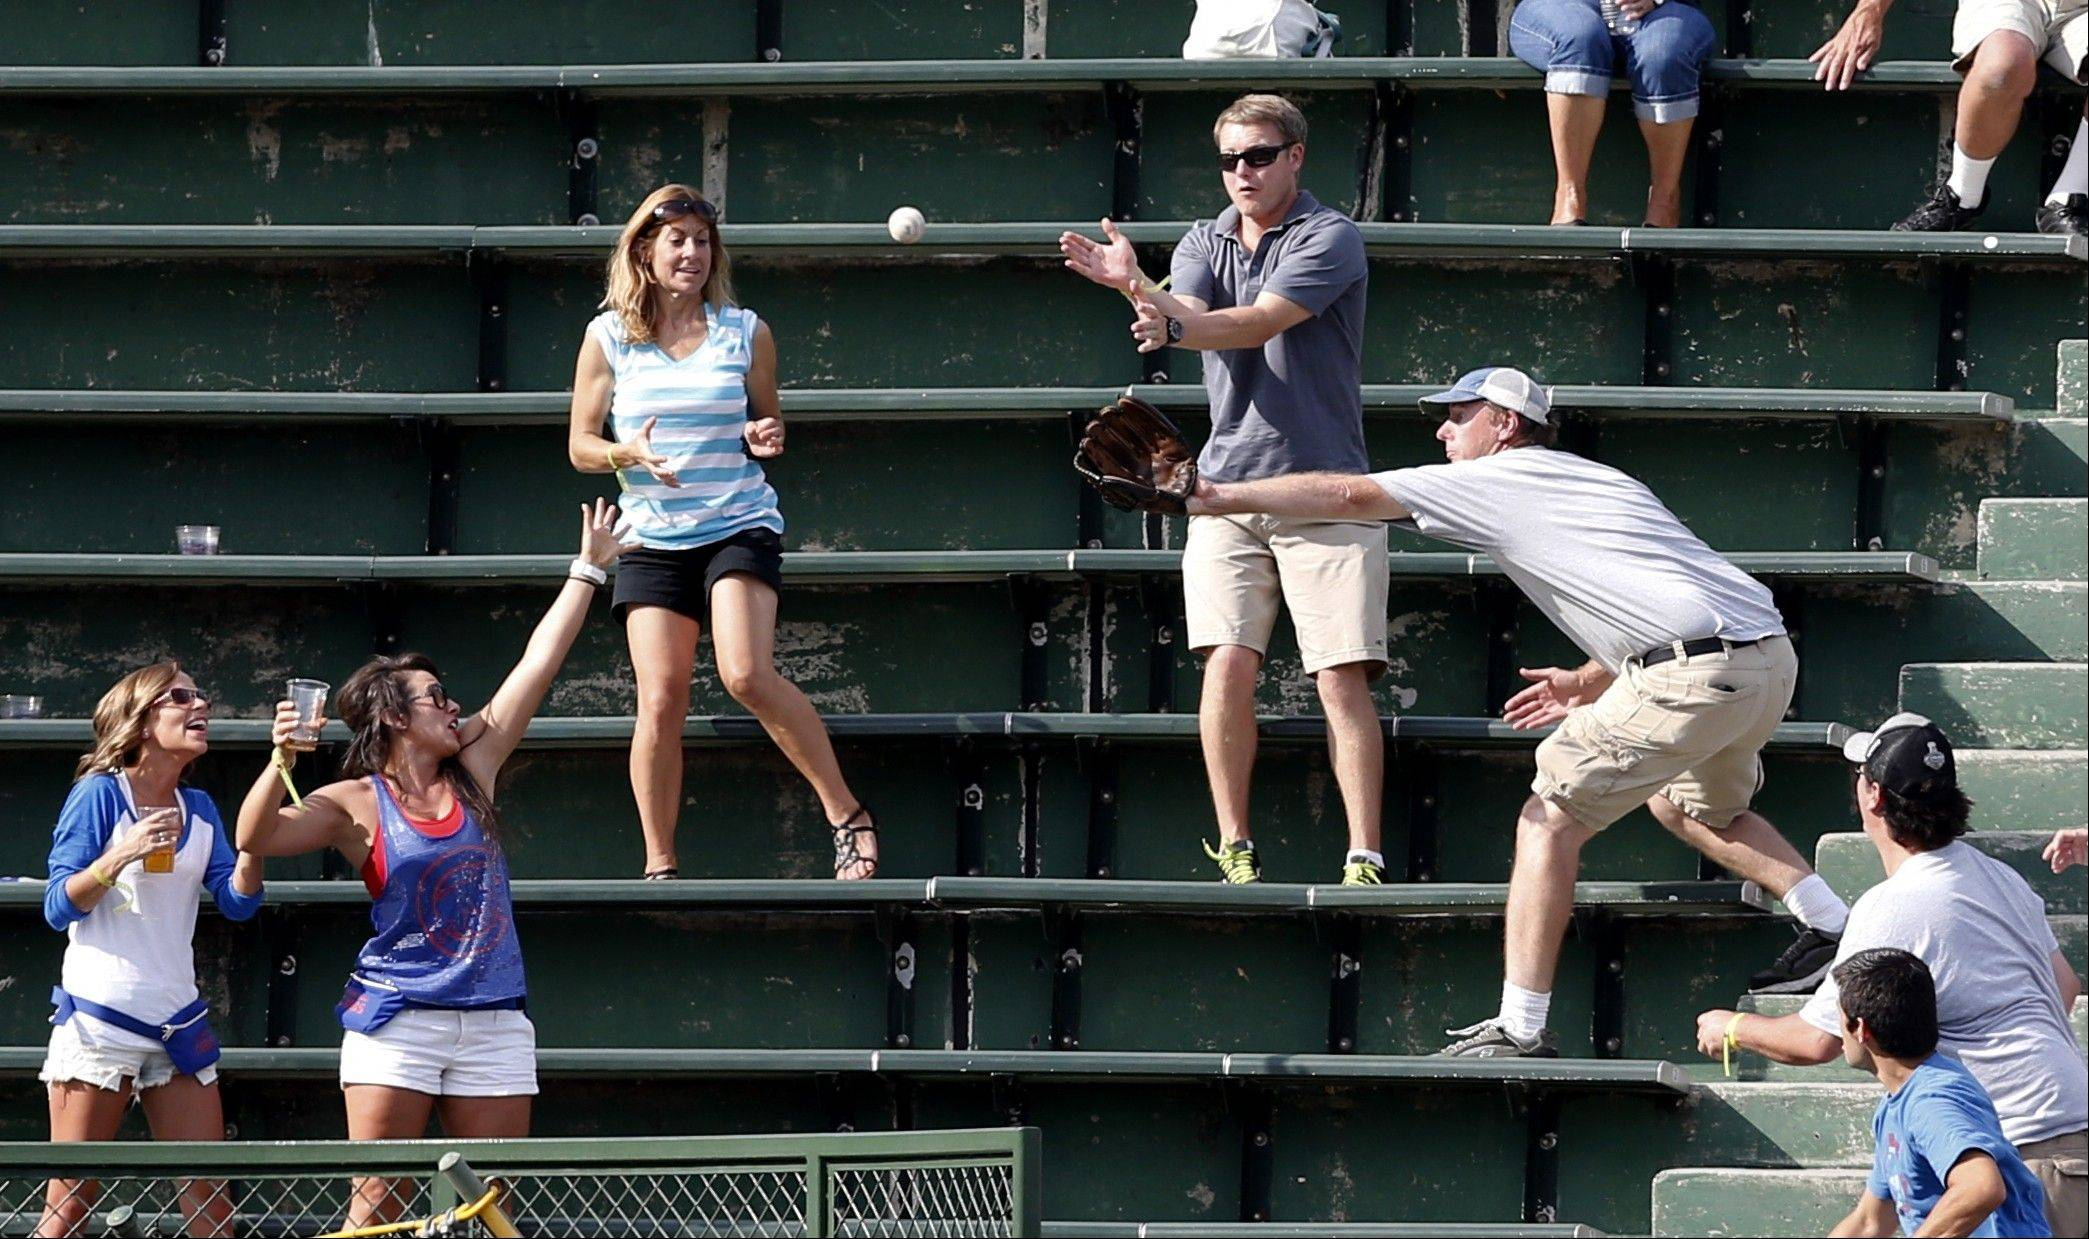 Fans in Wrigley Field's left field bleachers scramble for a two-run home run by Chicago Cubs' Donnie Murphy off Miami Marlins relief pitcher Ryan Webb during the seventh inning of a baseball game Wednesday, Sept. 4, 2013, in Chicago.